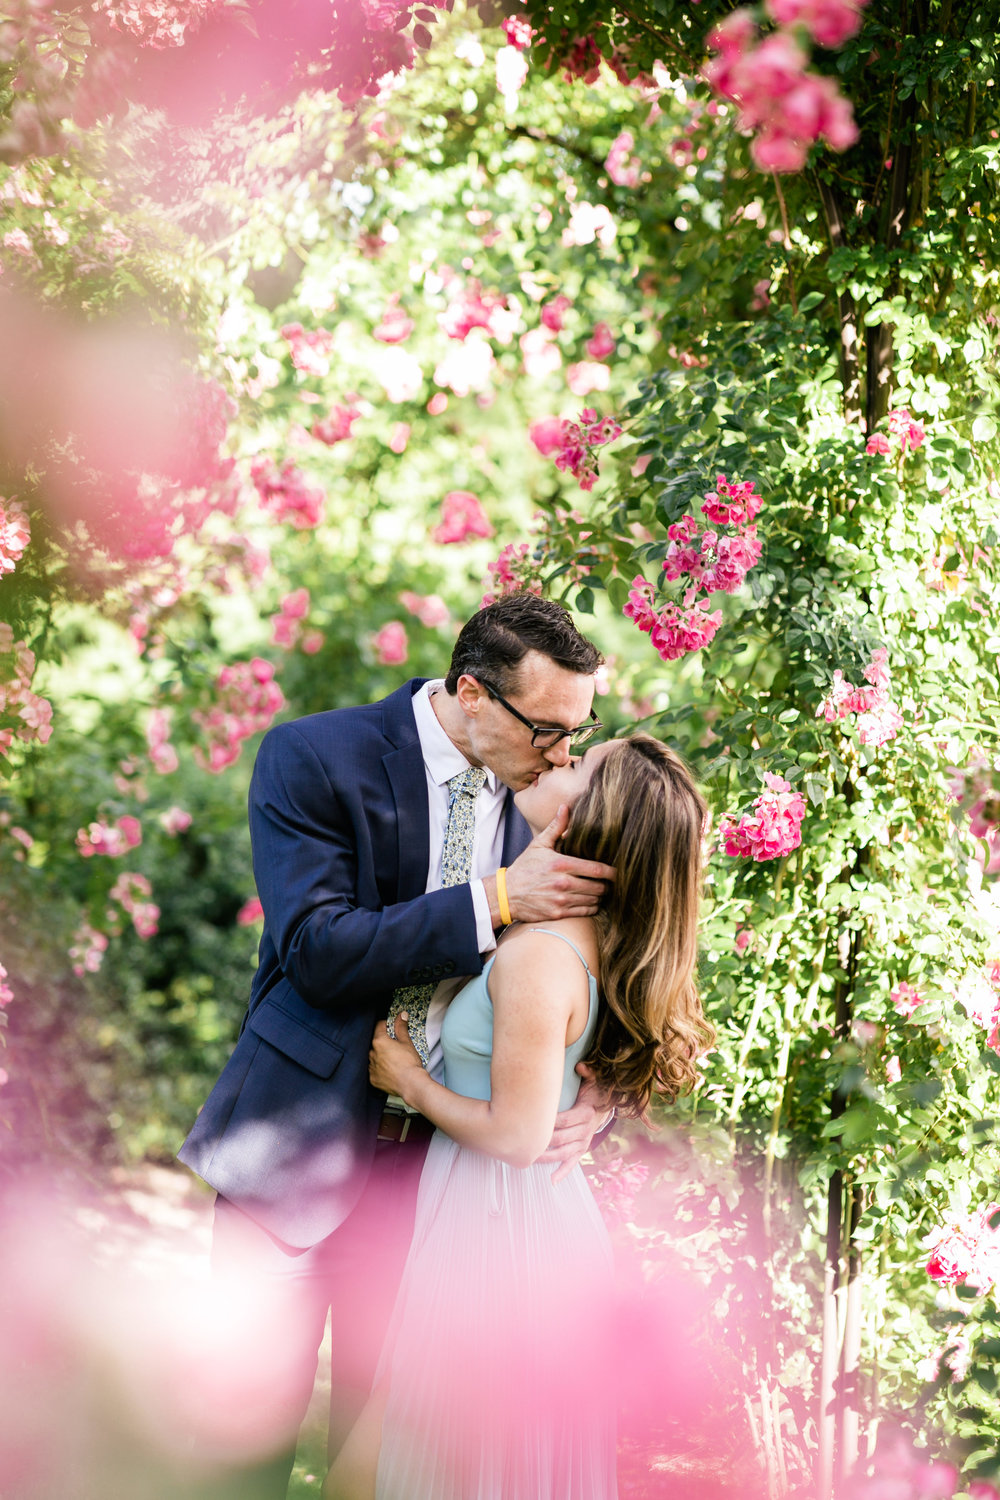 photography-natural-candid-engaged-proposal-philadelphia-wedding-longwood gardends-nature-flowers-modern-lifestyle-15.JPG